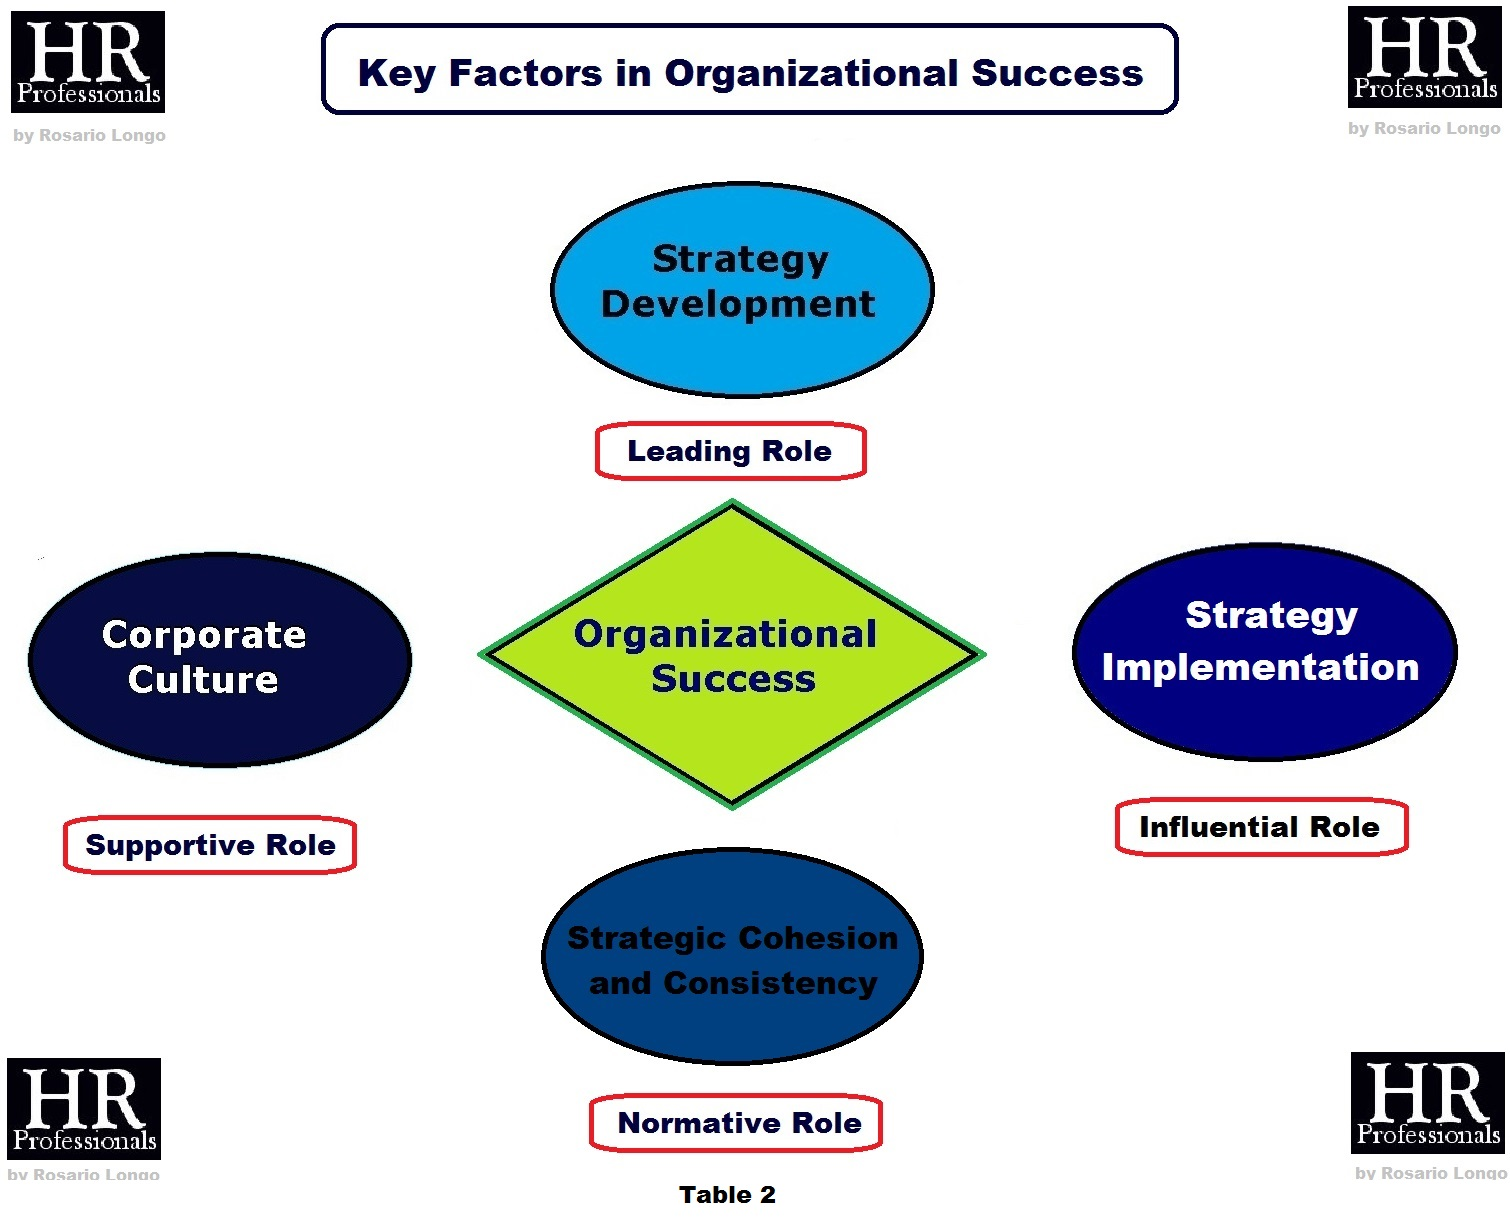 organizational success Int5acilons seven societal criteria of organizational success management success is an elusive concept it frequently represents a set of intermediate evaluations which, in turn, it is hoped we approximations of more ultimate criteria of organ- izational success but, organizational success is an equally.